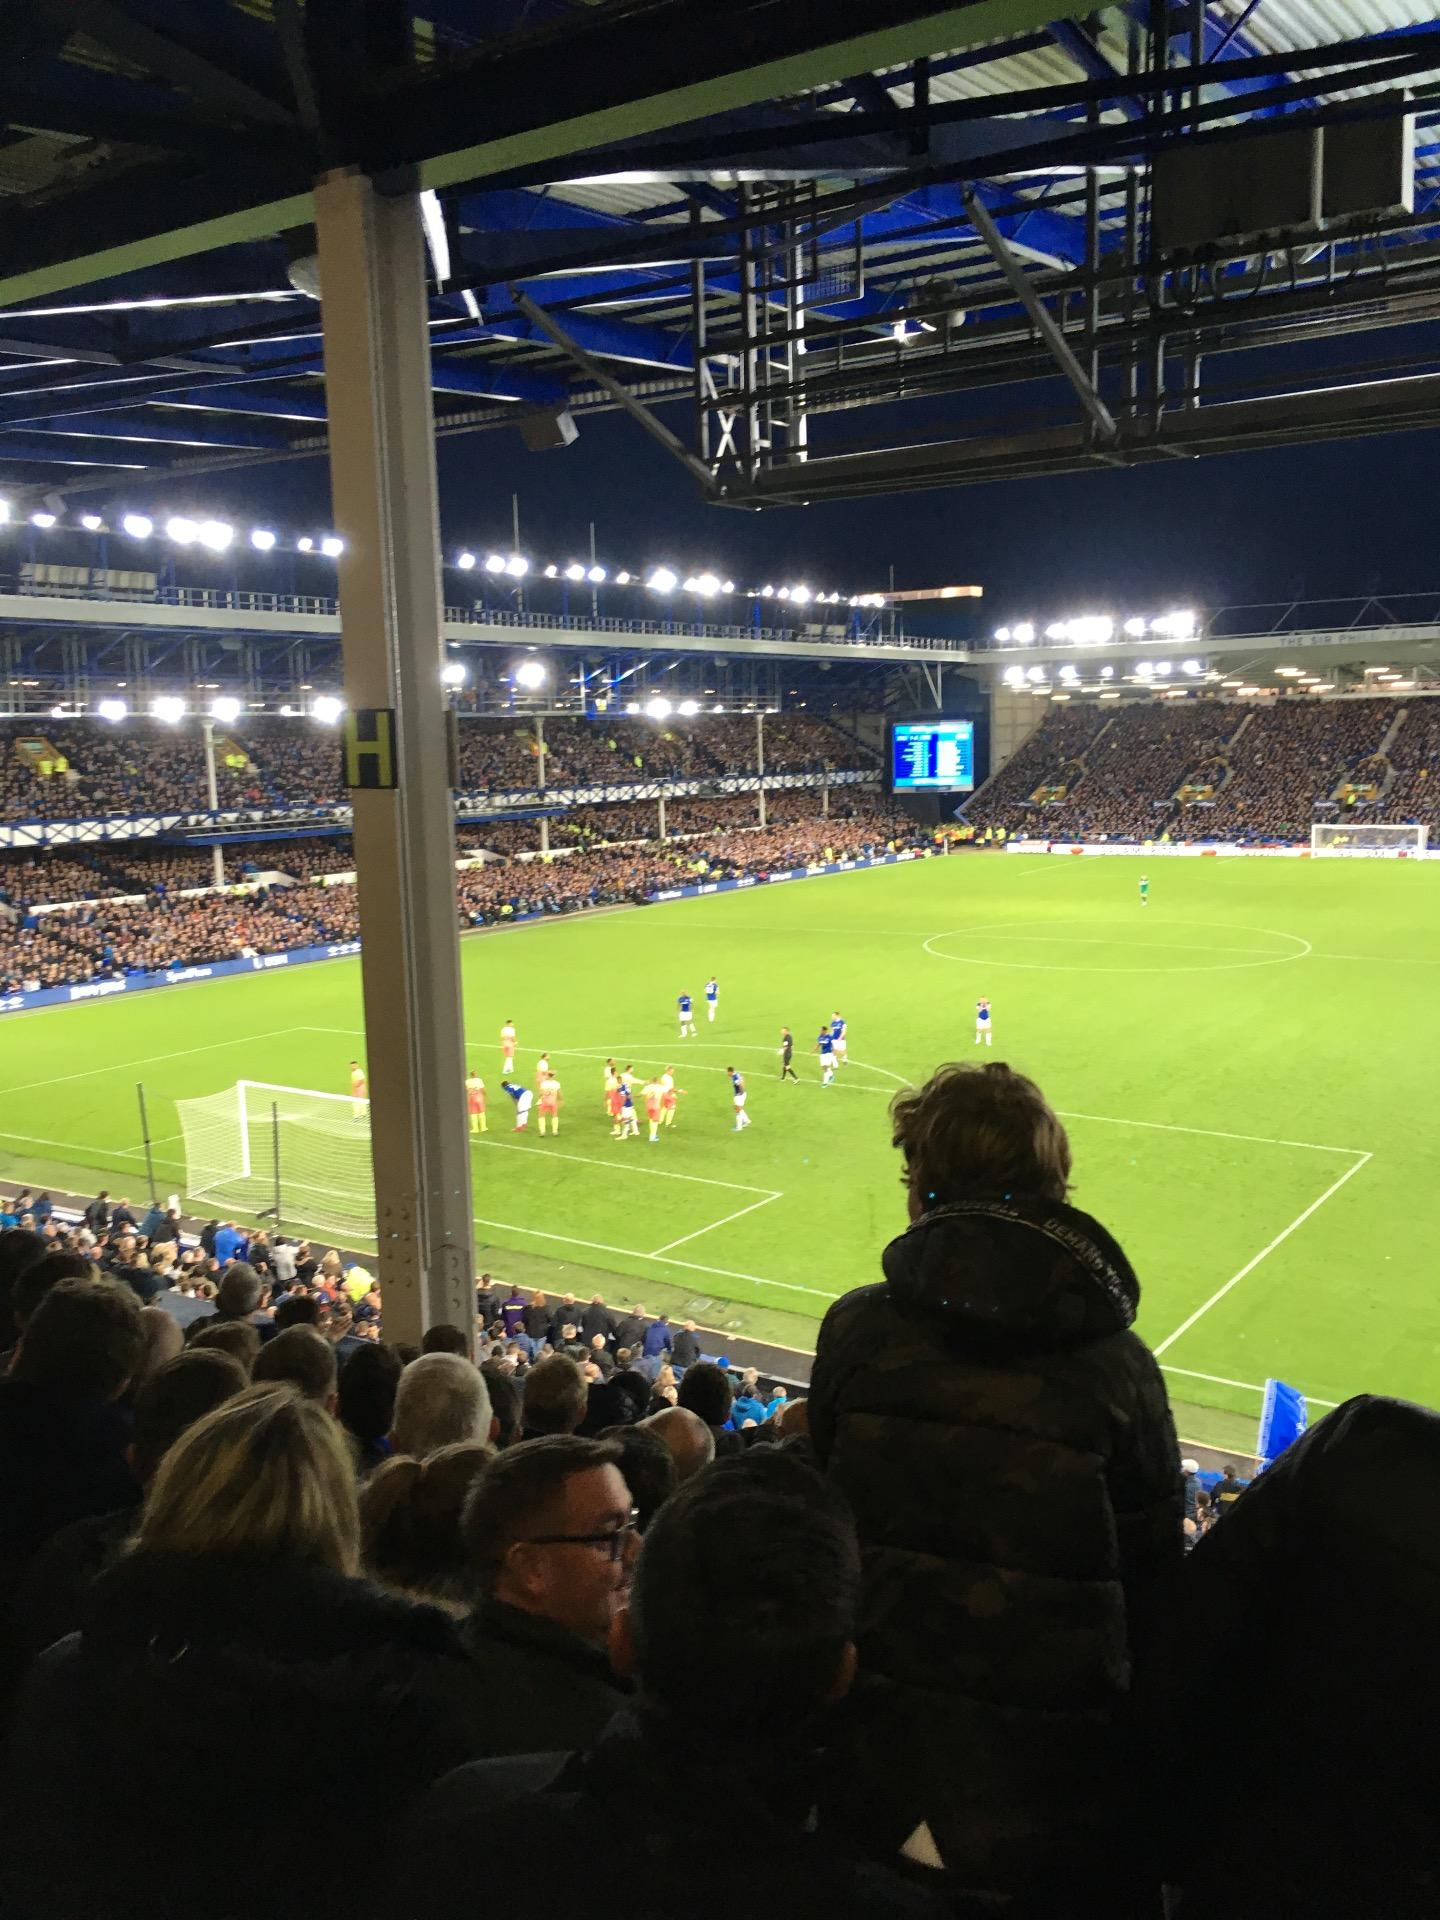 Goodison Park Section GS1 Row H Seat 38